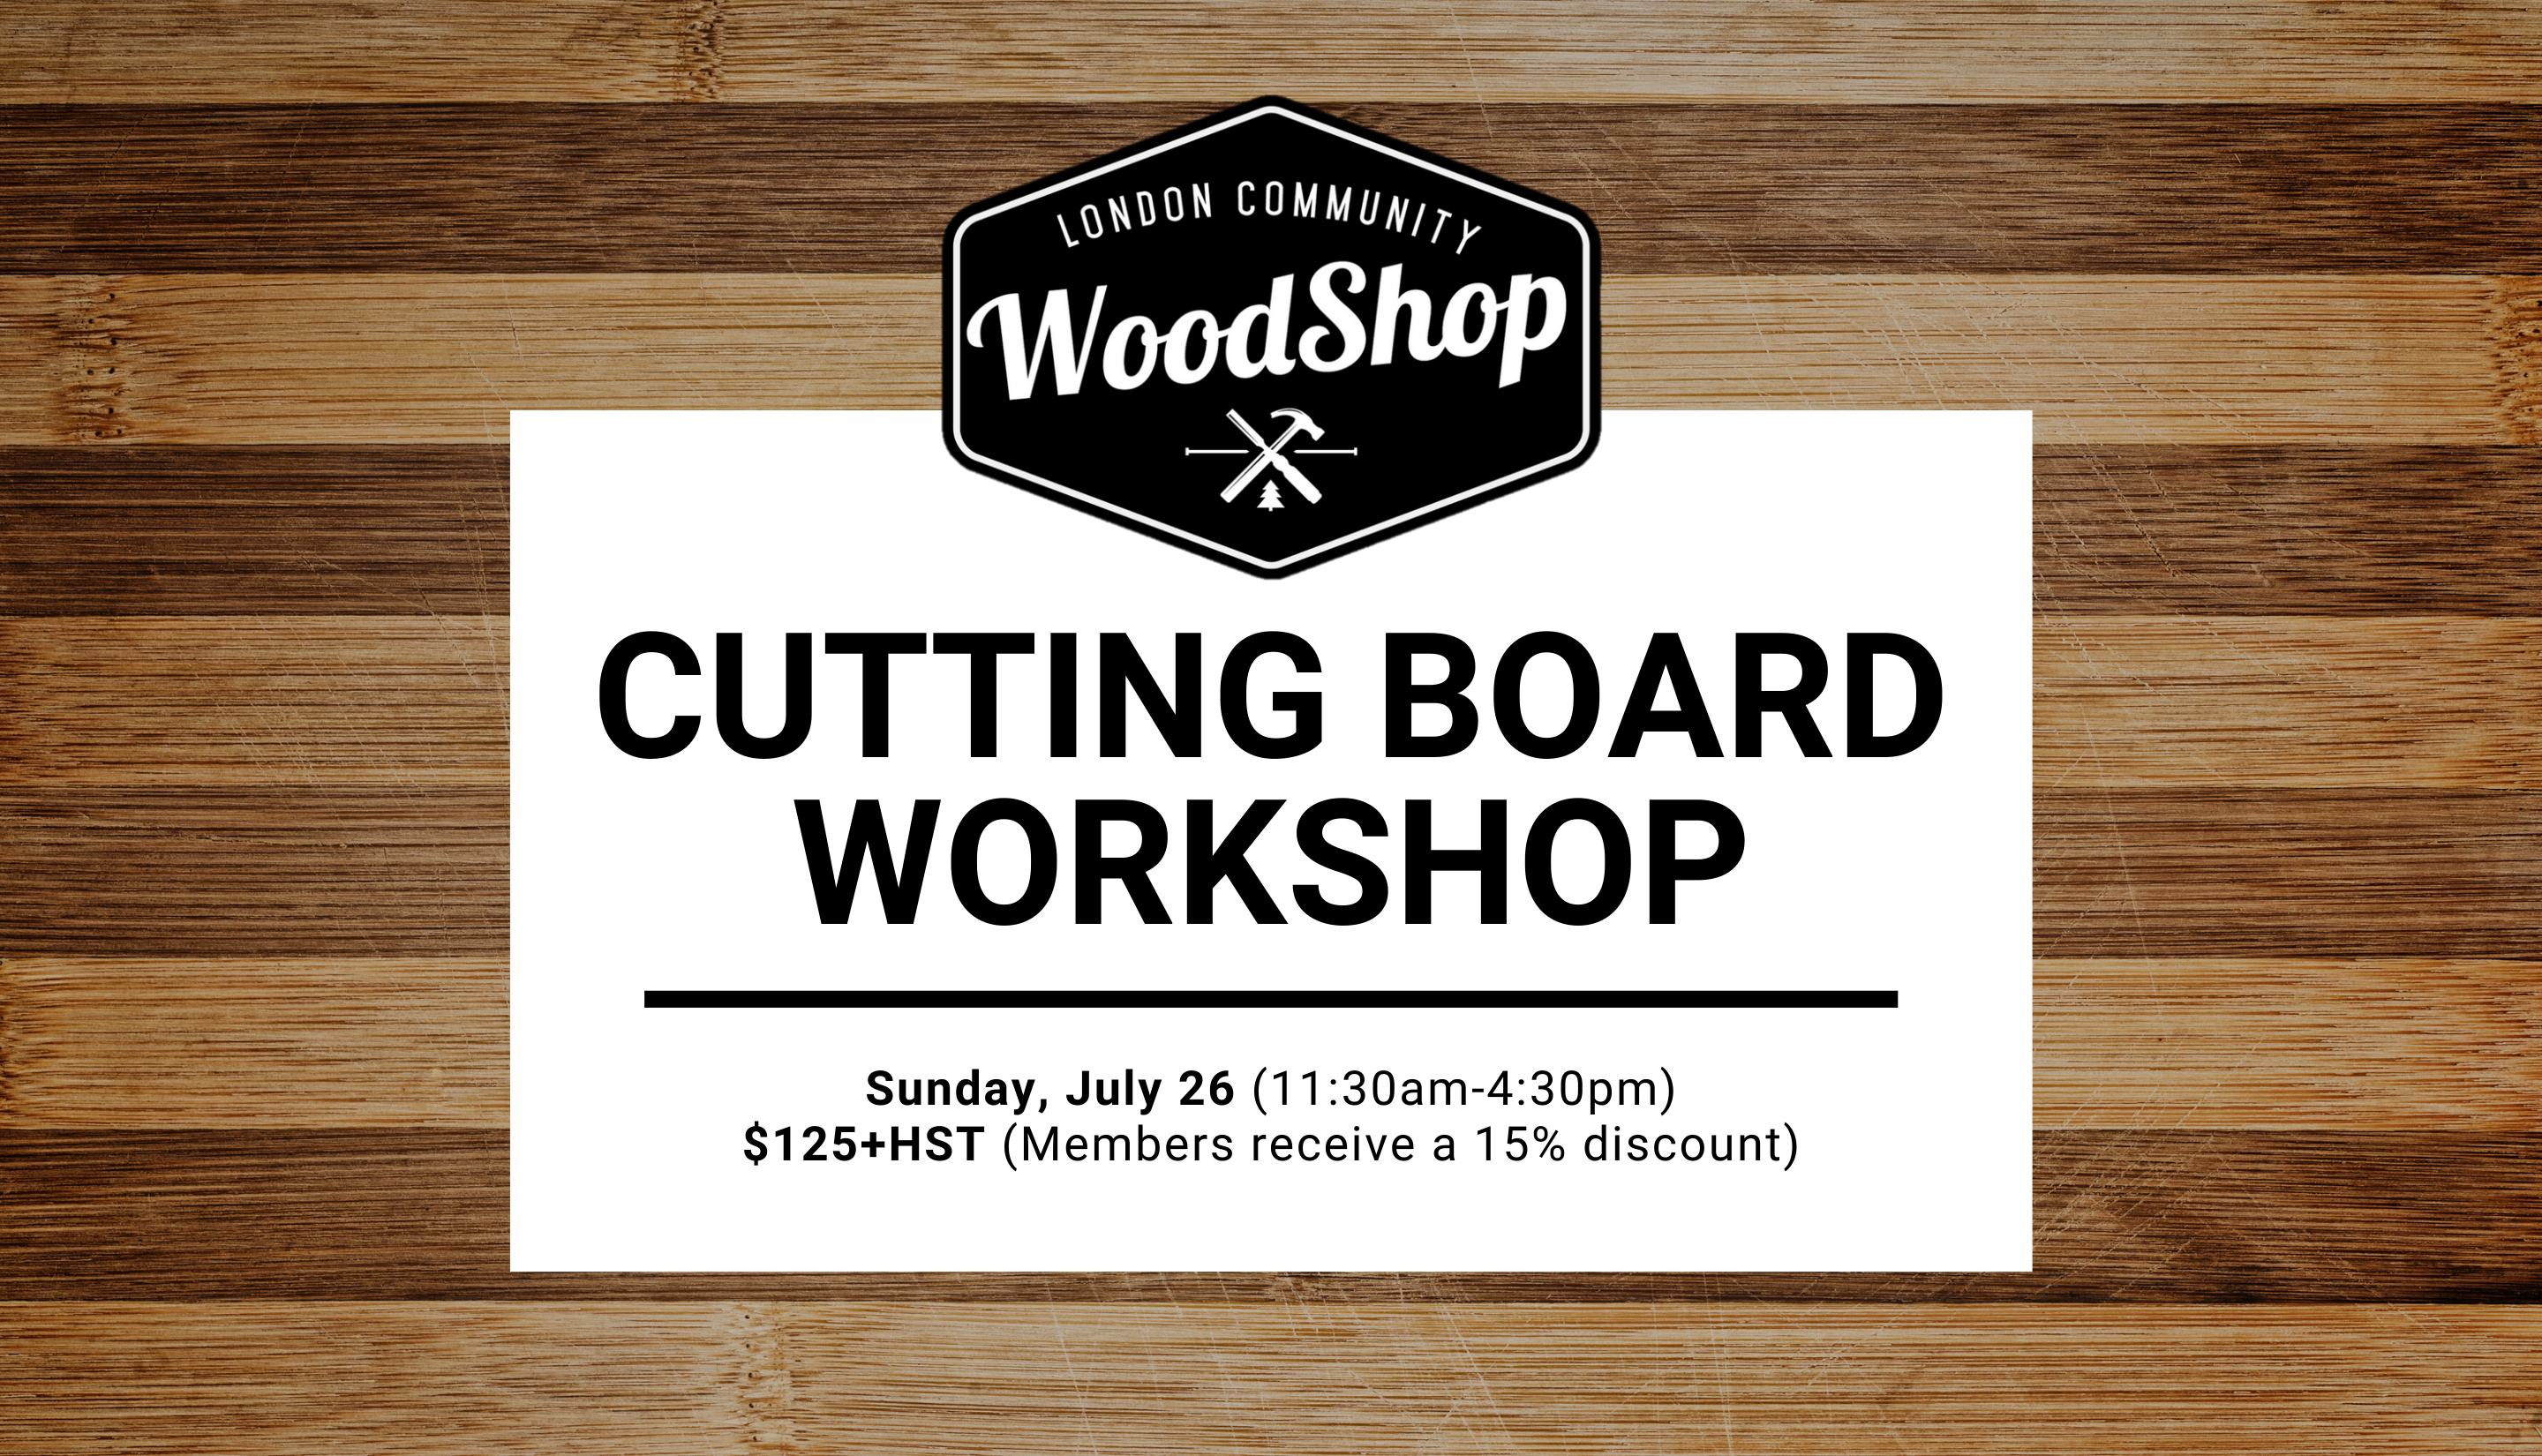 Cutting Board Workshop - Sunday, July 26